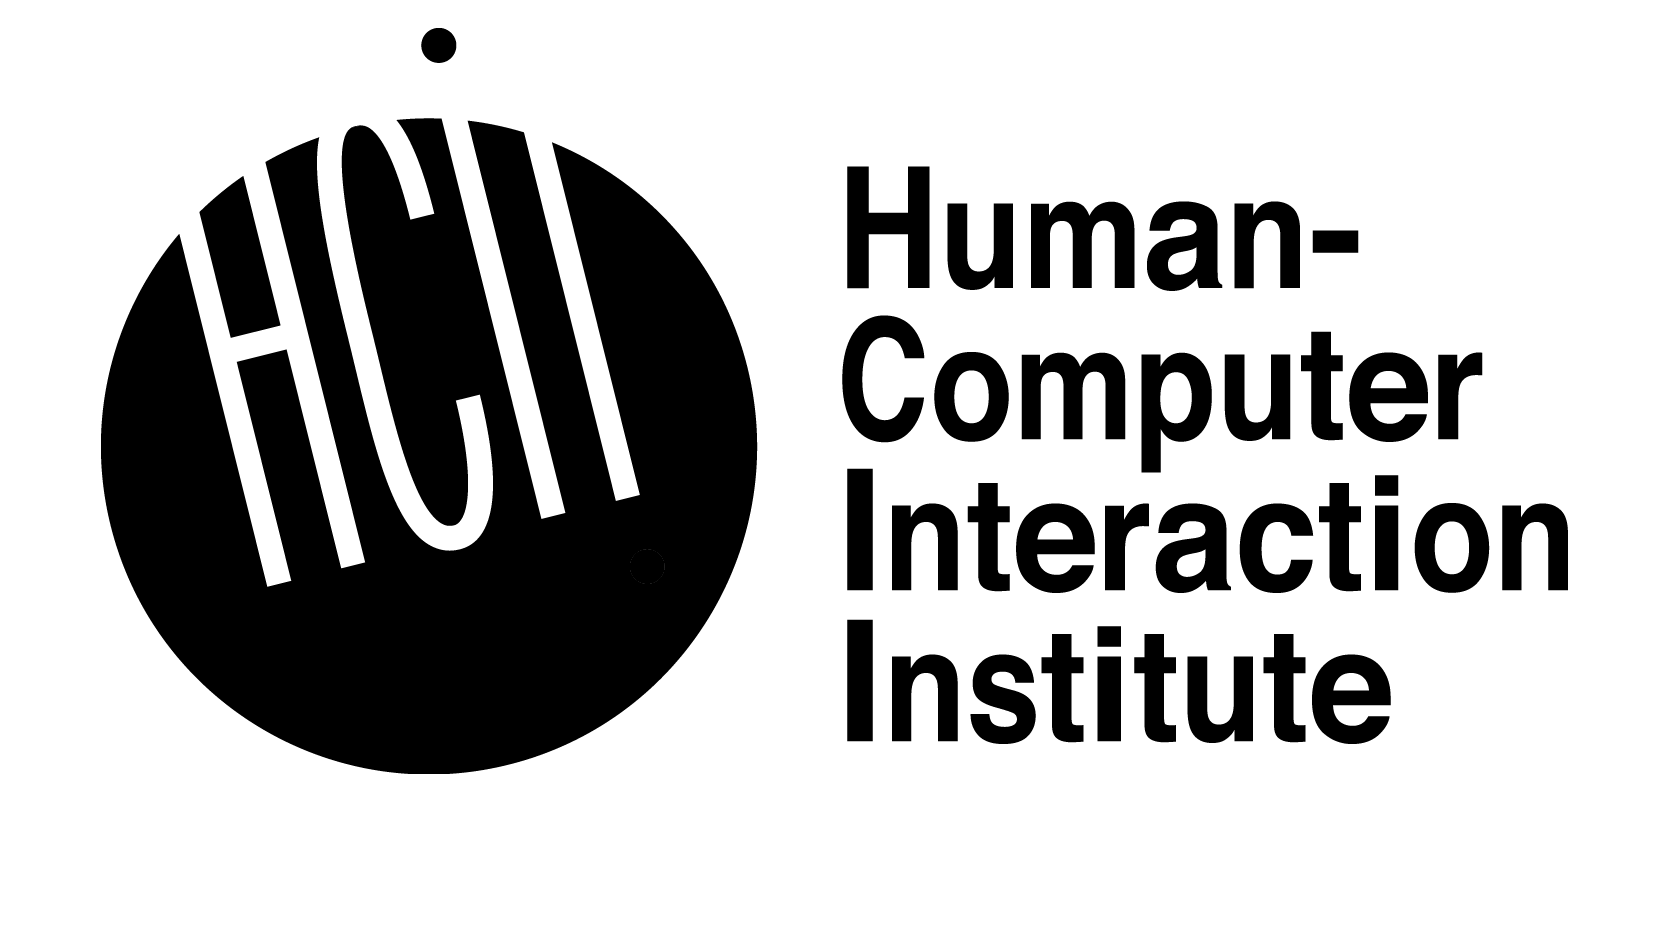 Future Interfaces Group